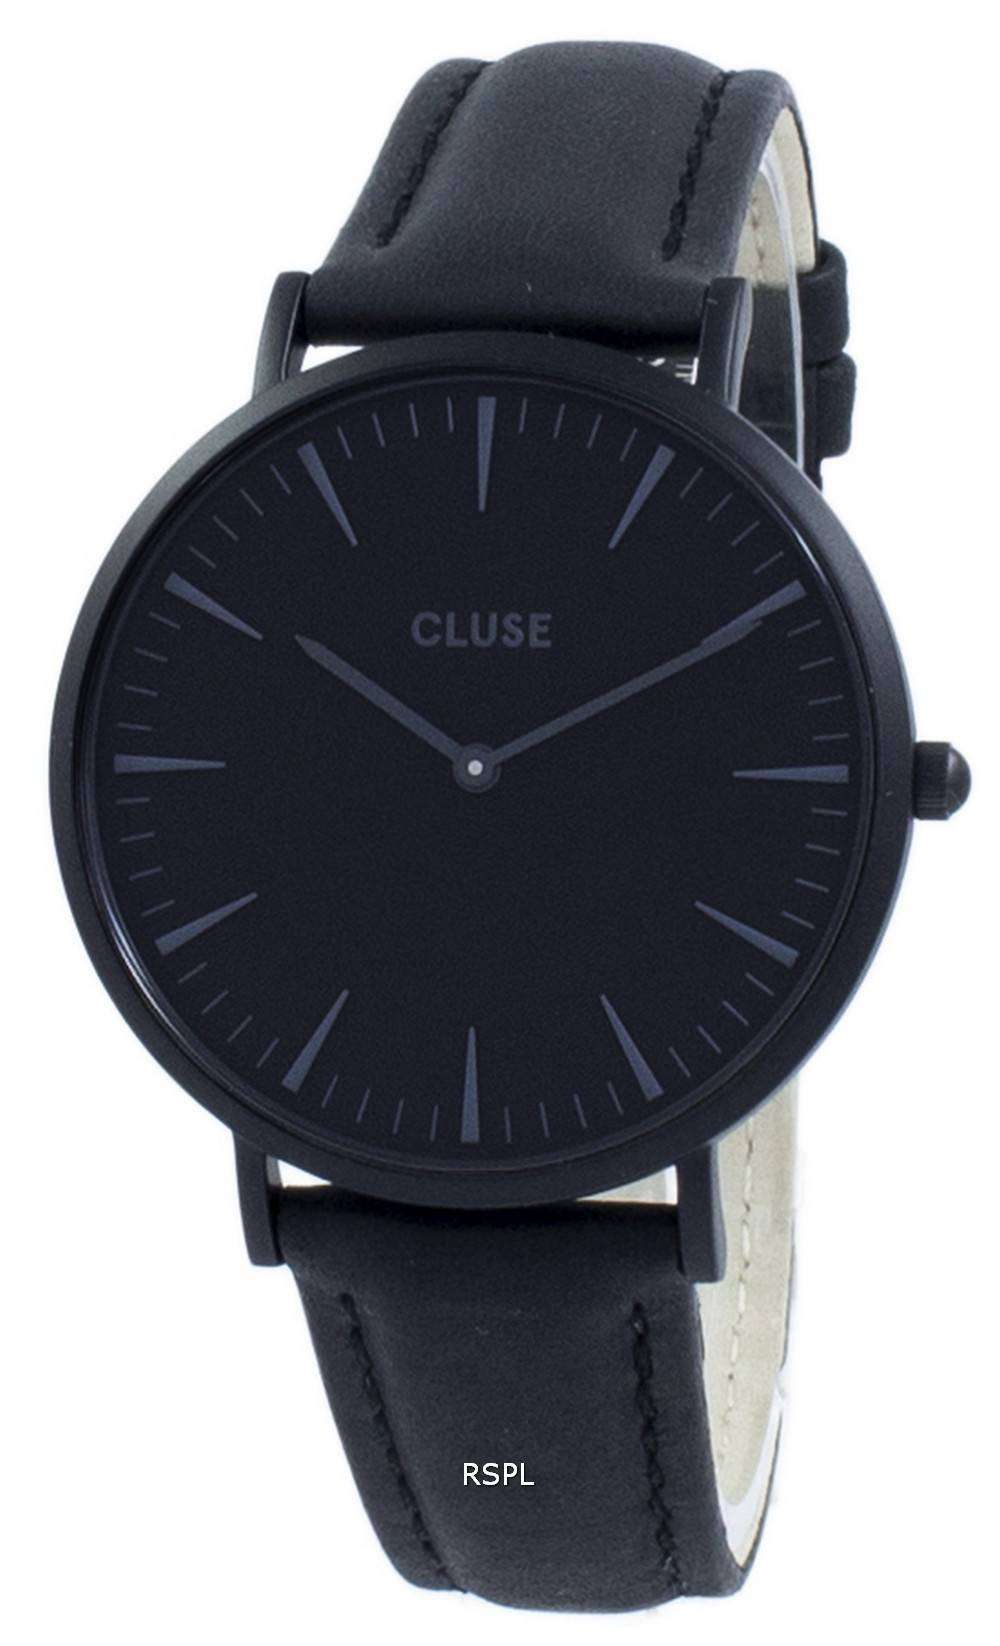 Cluse ラ ・ ボエーム石英 CL18501 レディース腕時計